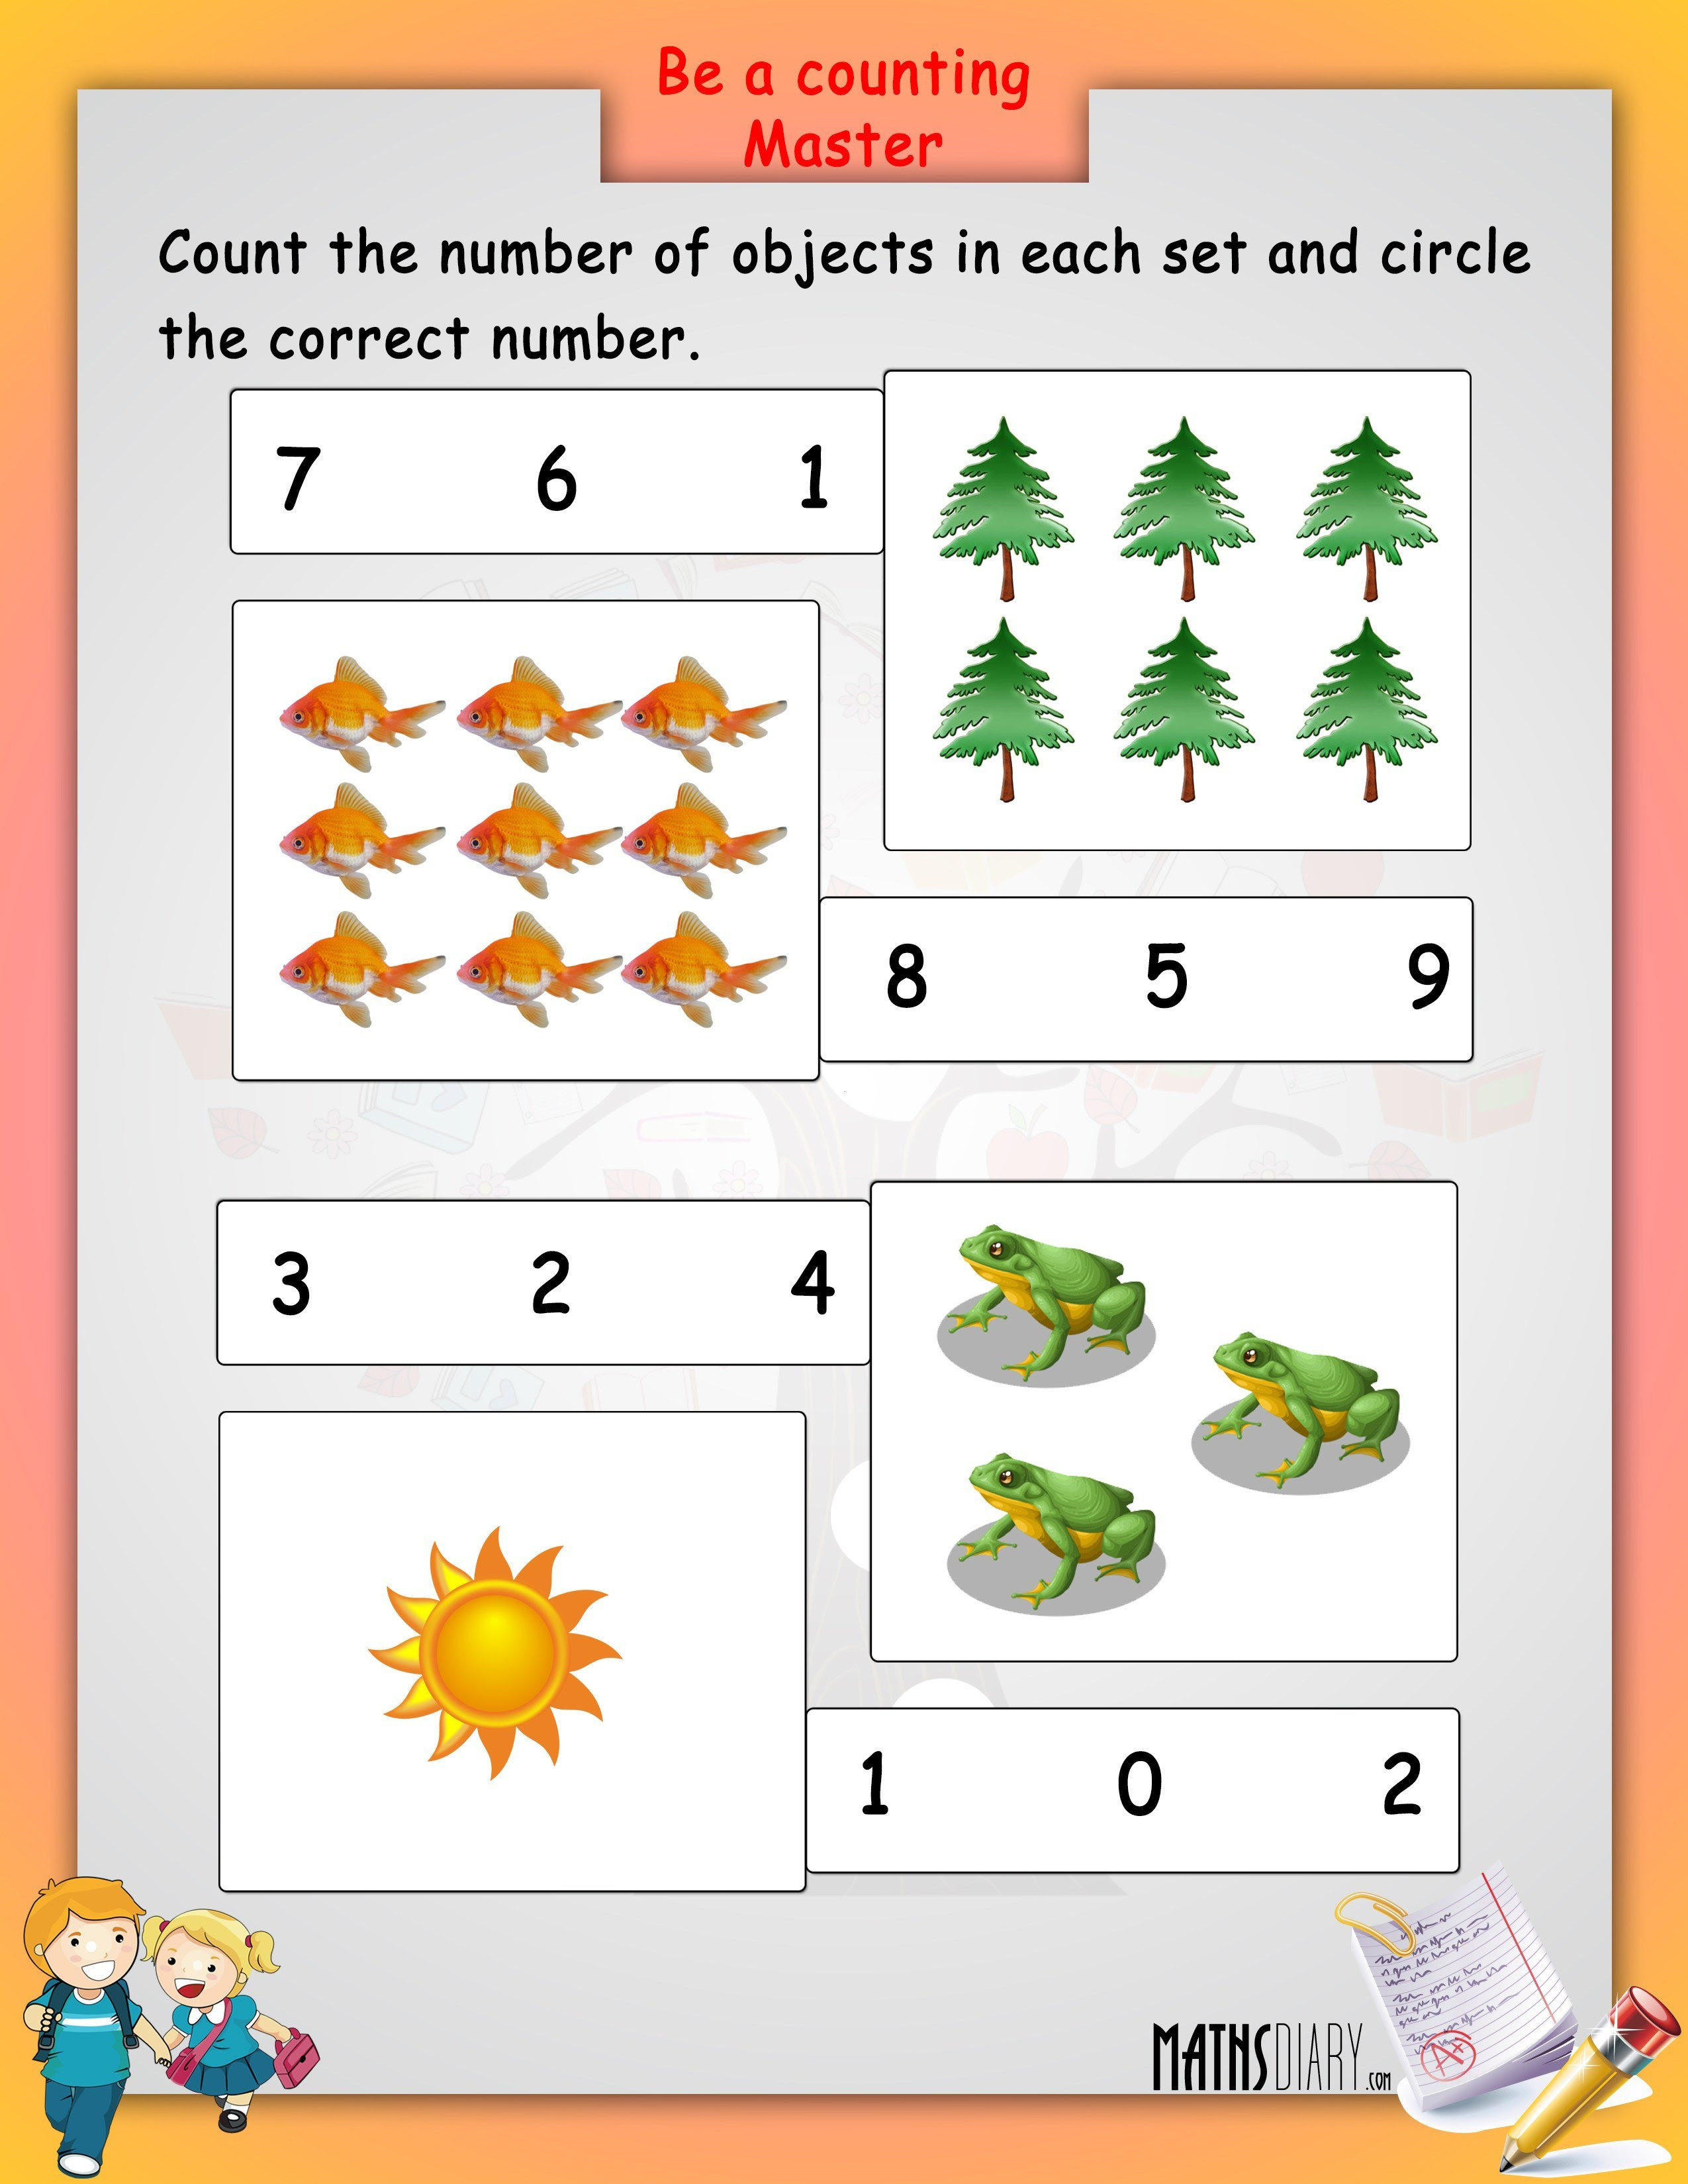 4 FREE MATH WORKSHEETS FOR GRADE 5 CBSE